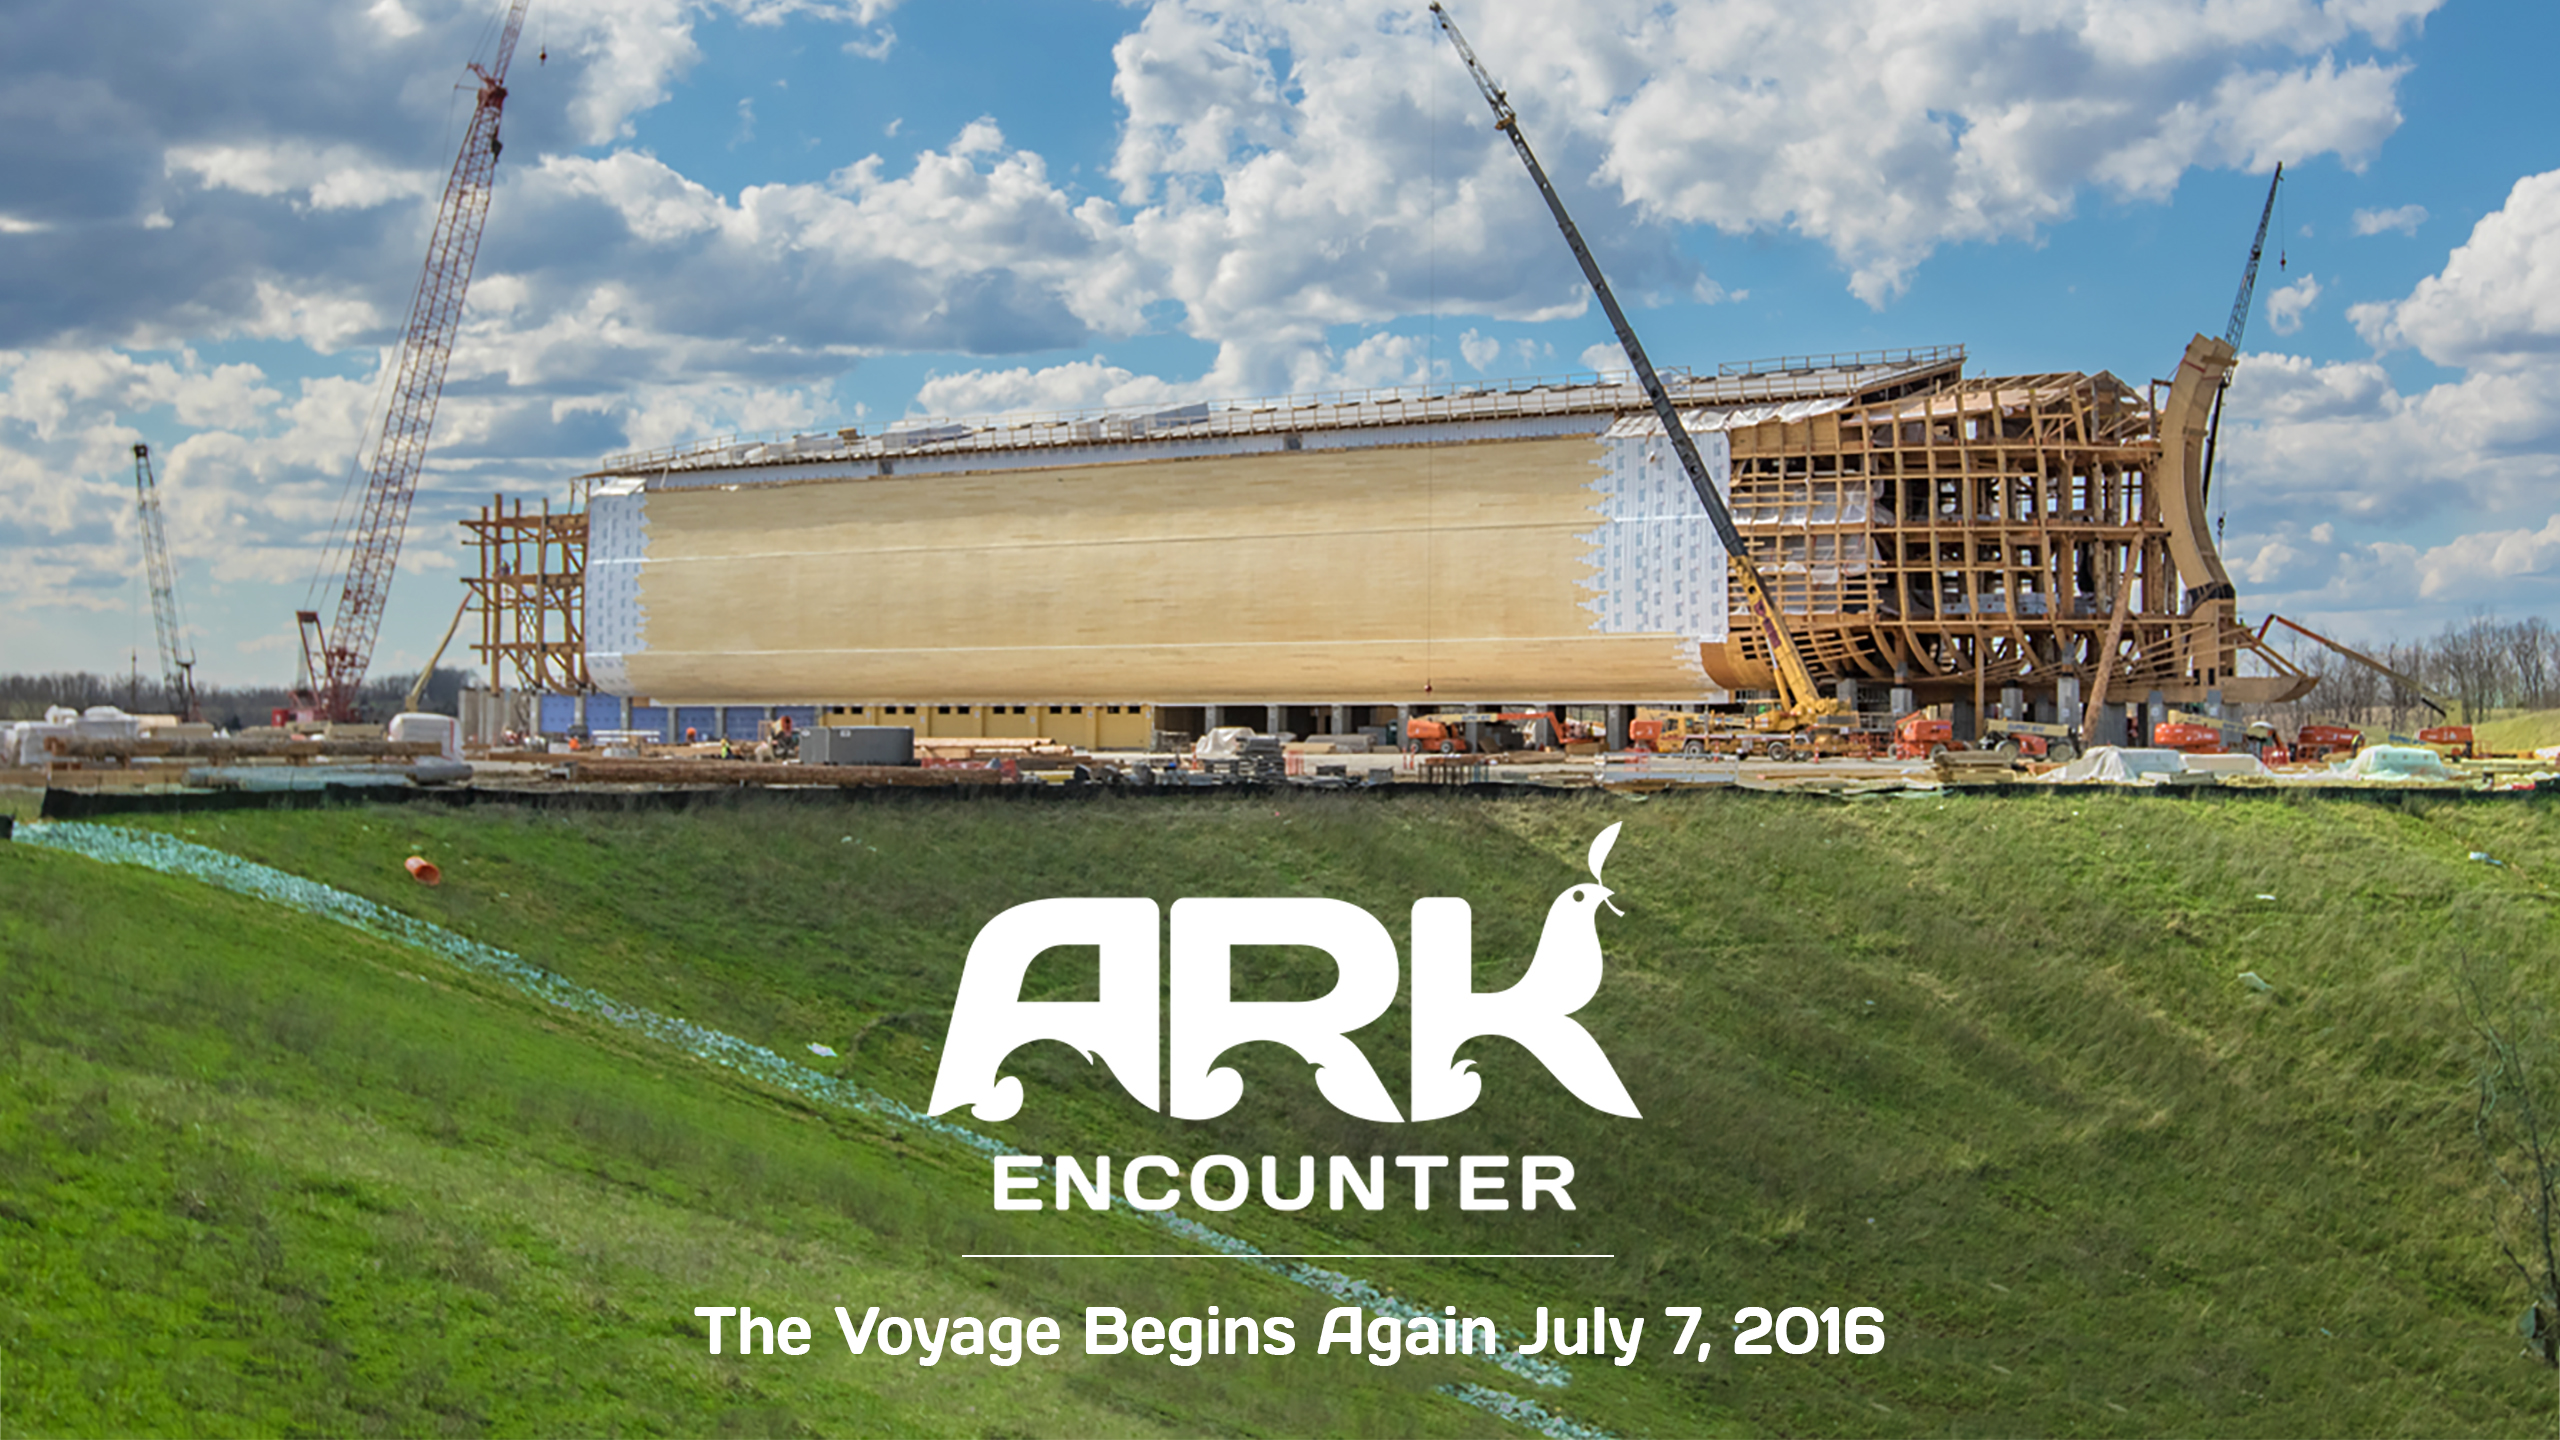 An overview of Ark Encounter.